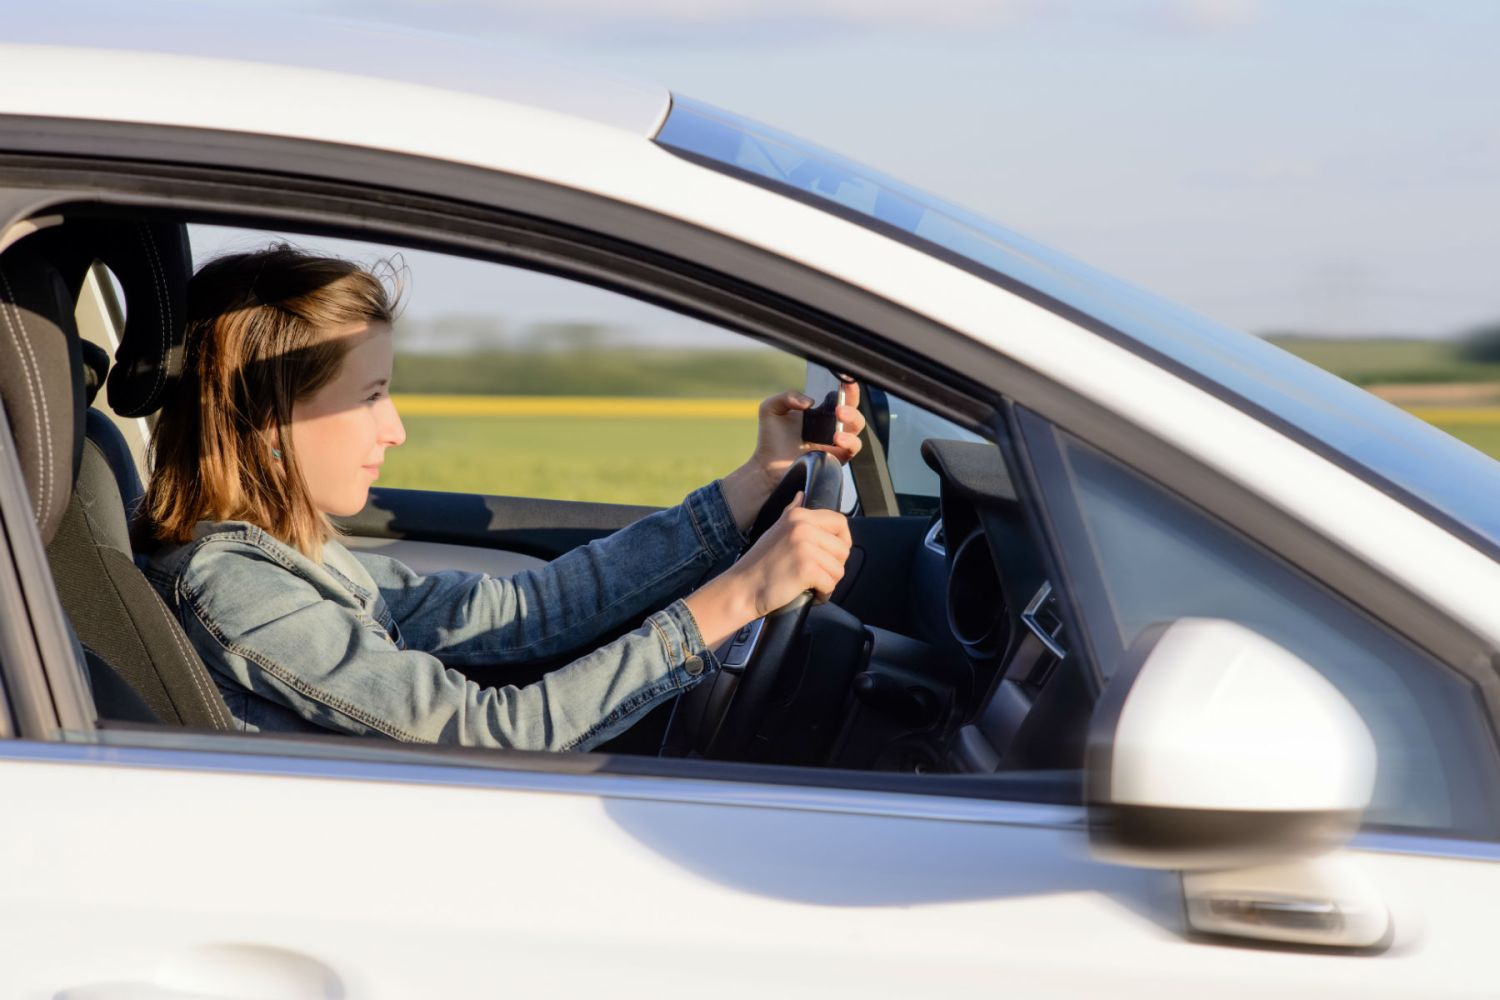 Mobile phone companies urged to introduce 'driving' modes